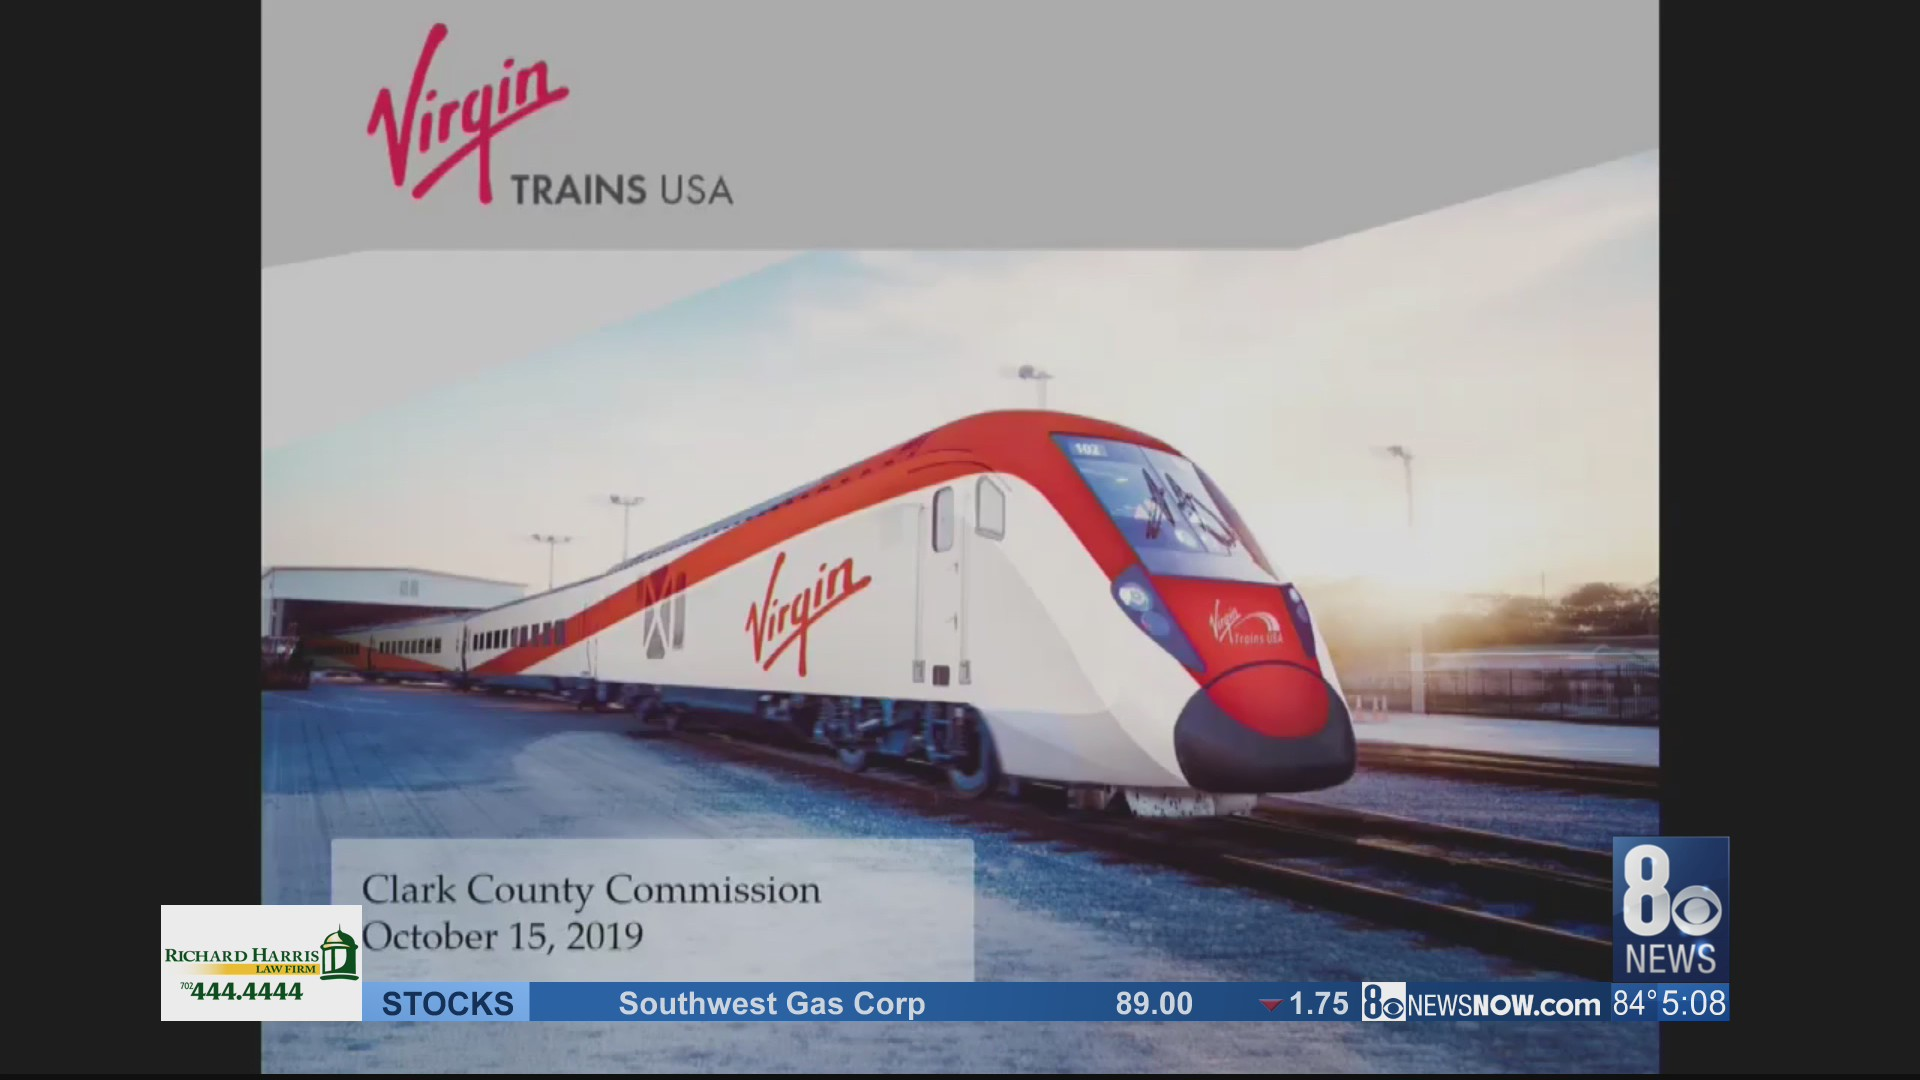 Virgin Train USA